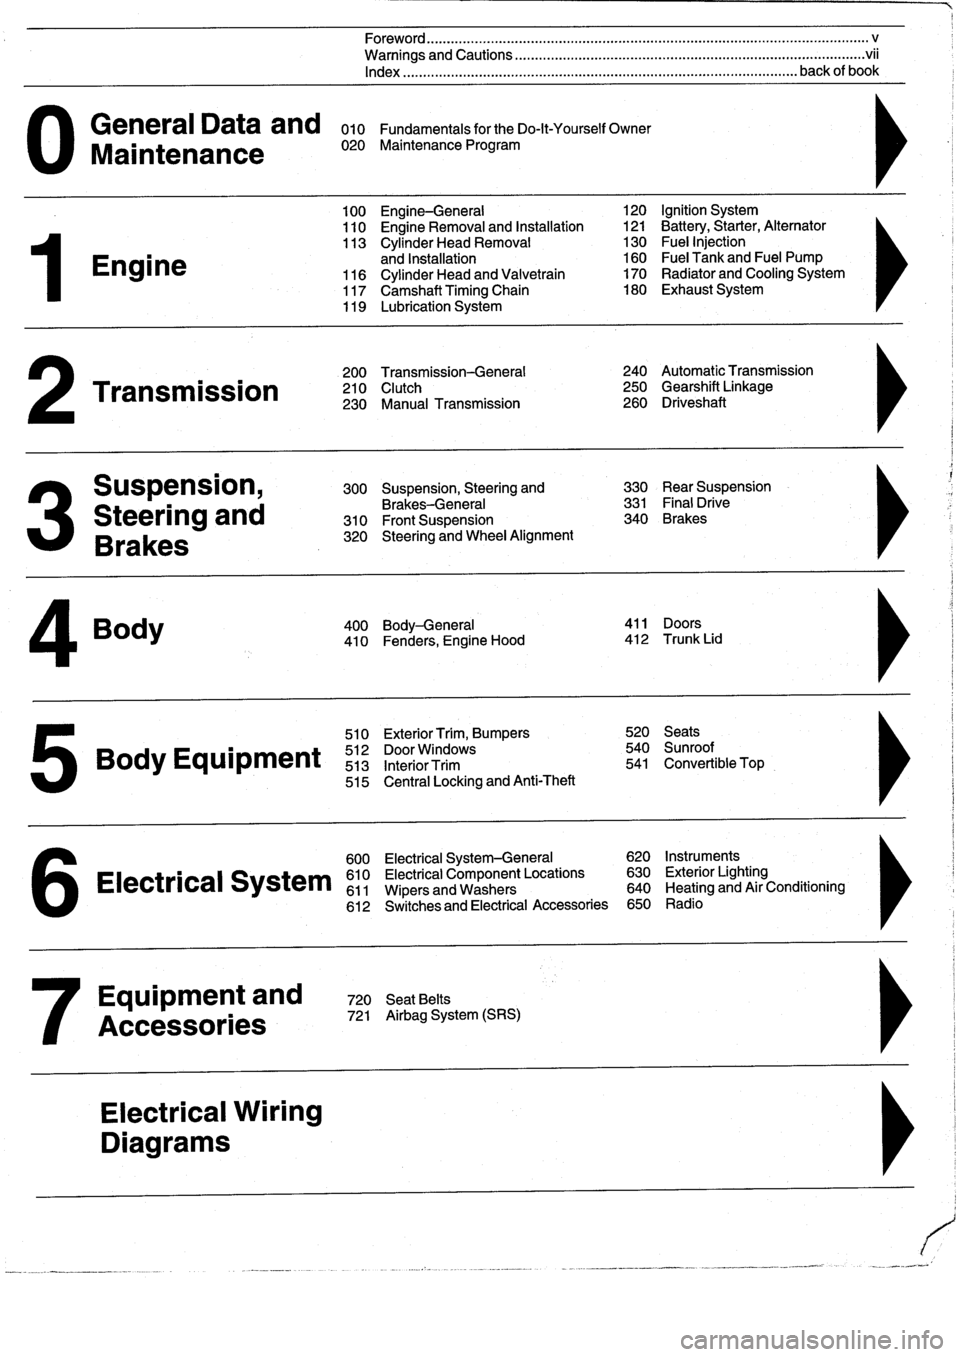 BMW 323i 1993 E36 Workshop Manual, Page 3